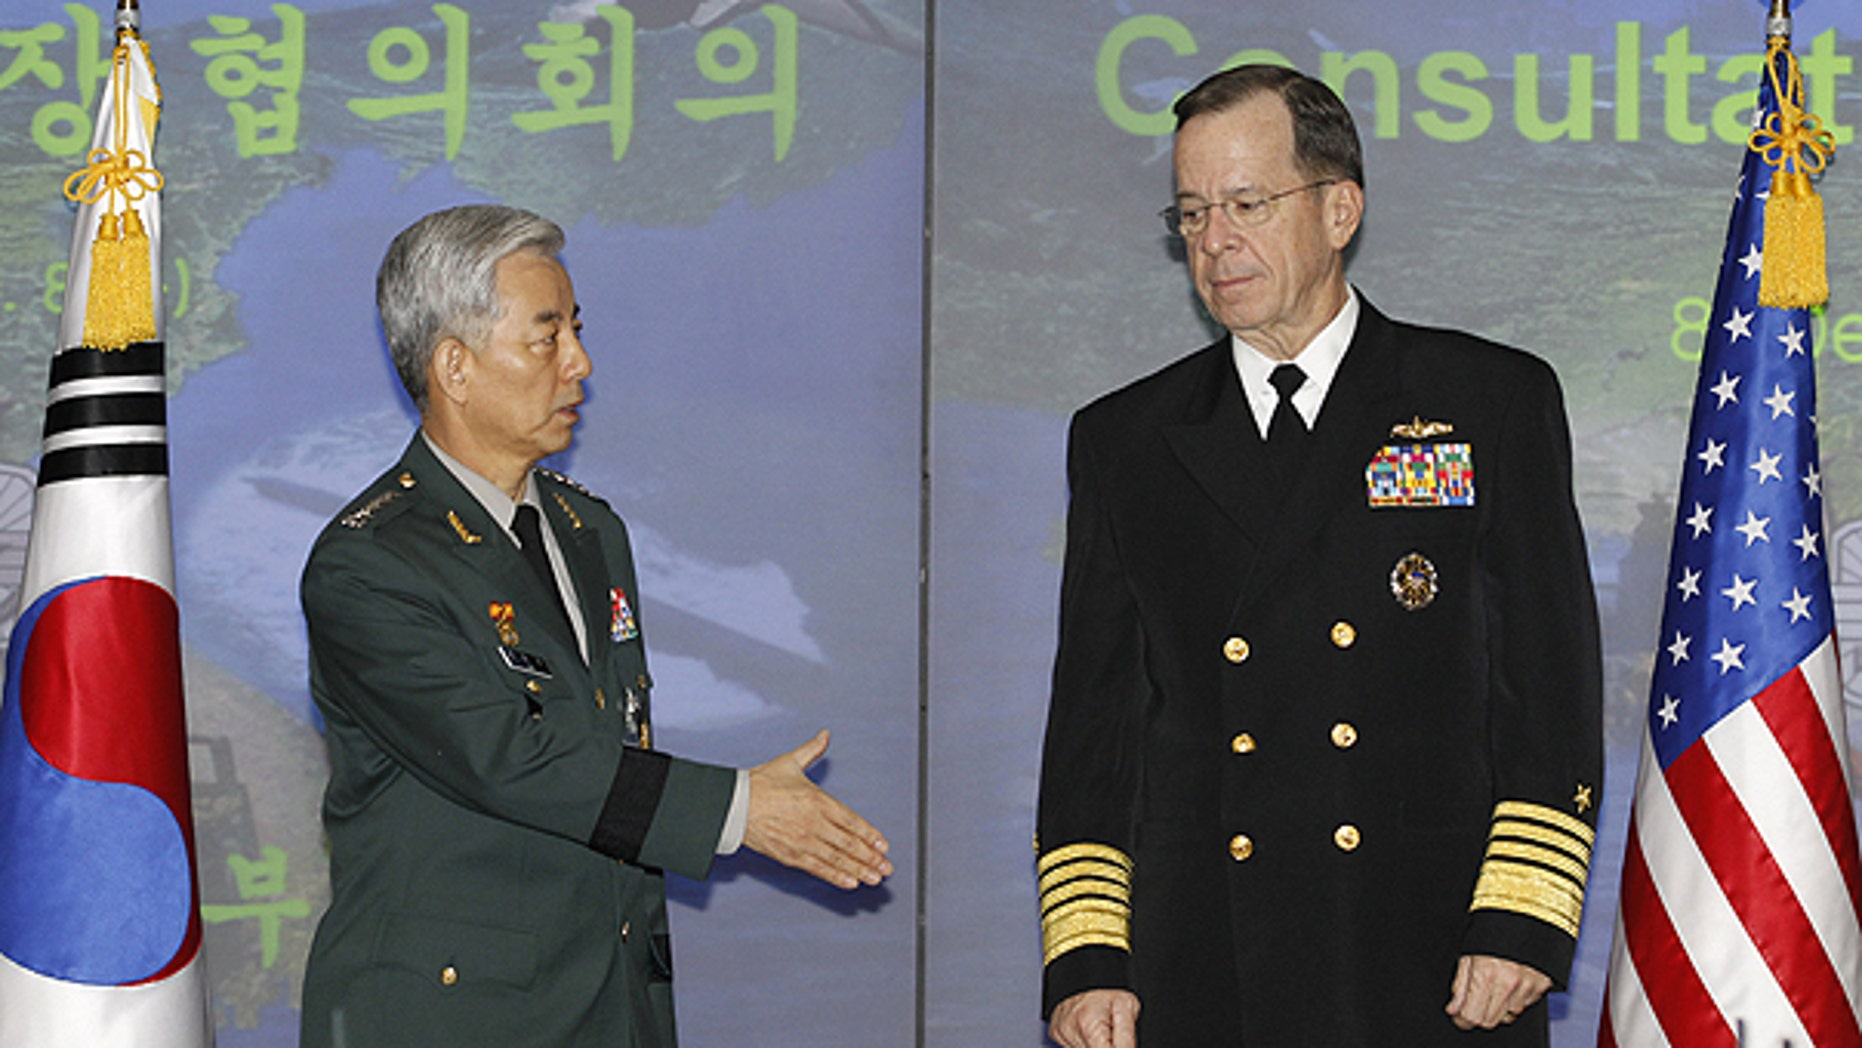 Dec. 8: Gen. Han Min-koo, chairman of South Korean Joint Chiefs of Staff, and his U.S. counterpart Adm. Mike Mullen pose for photographers before their talks at a headquarters of South Korean Defense Ministry in Seoul.